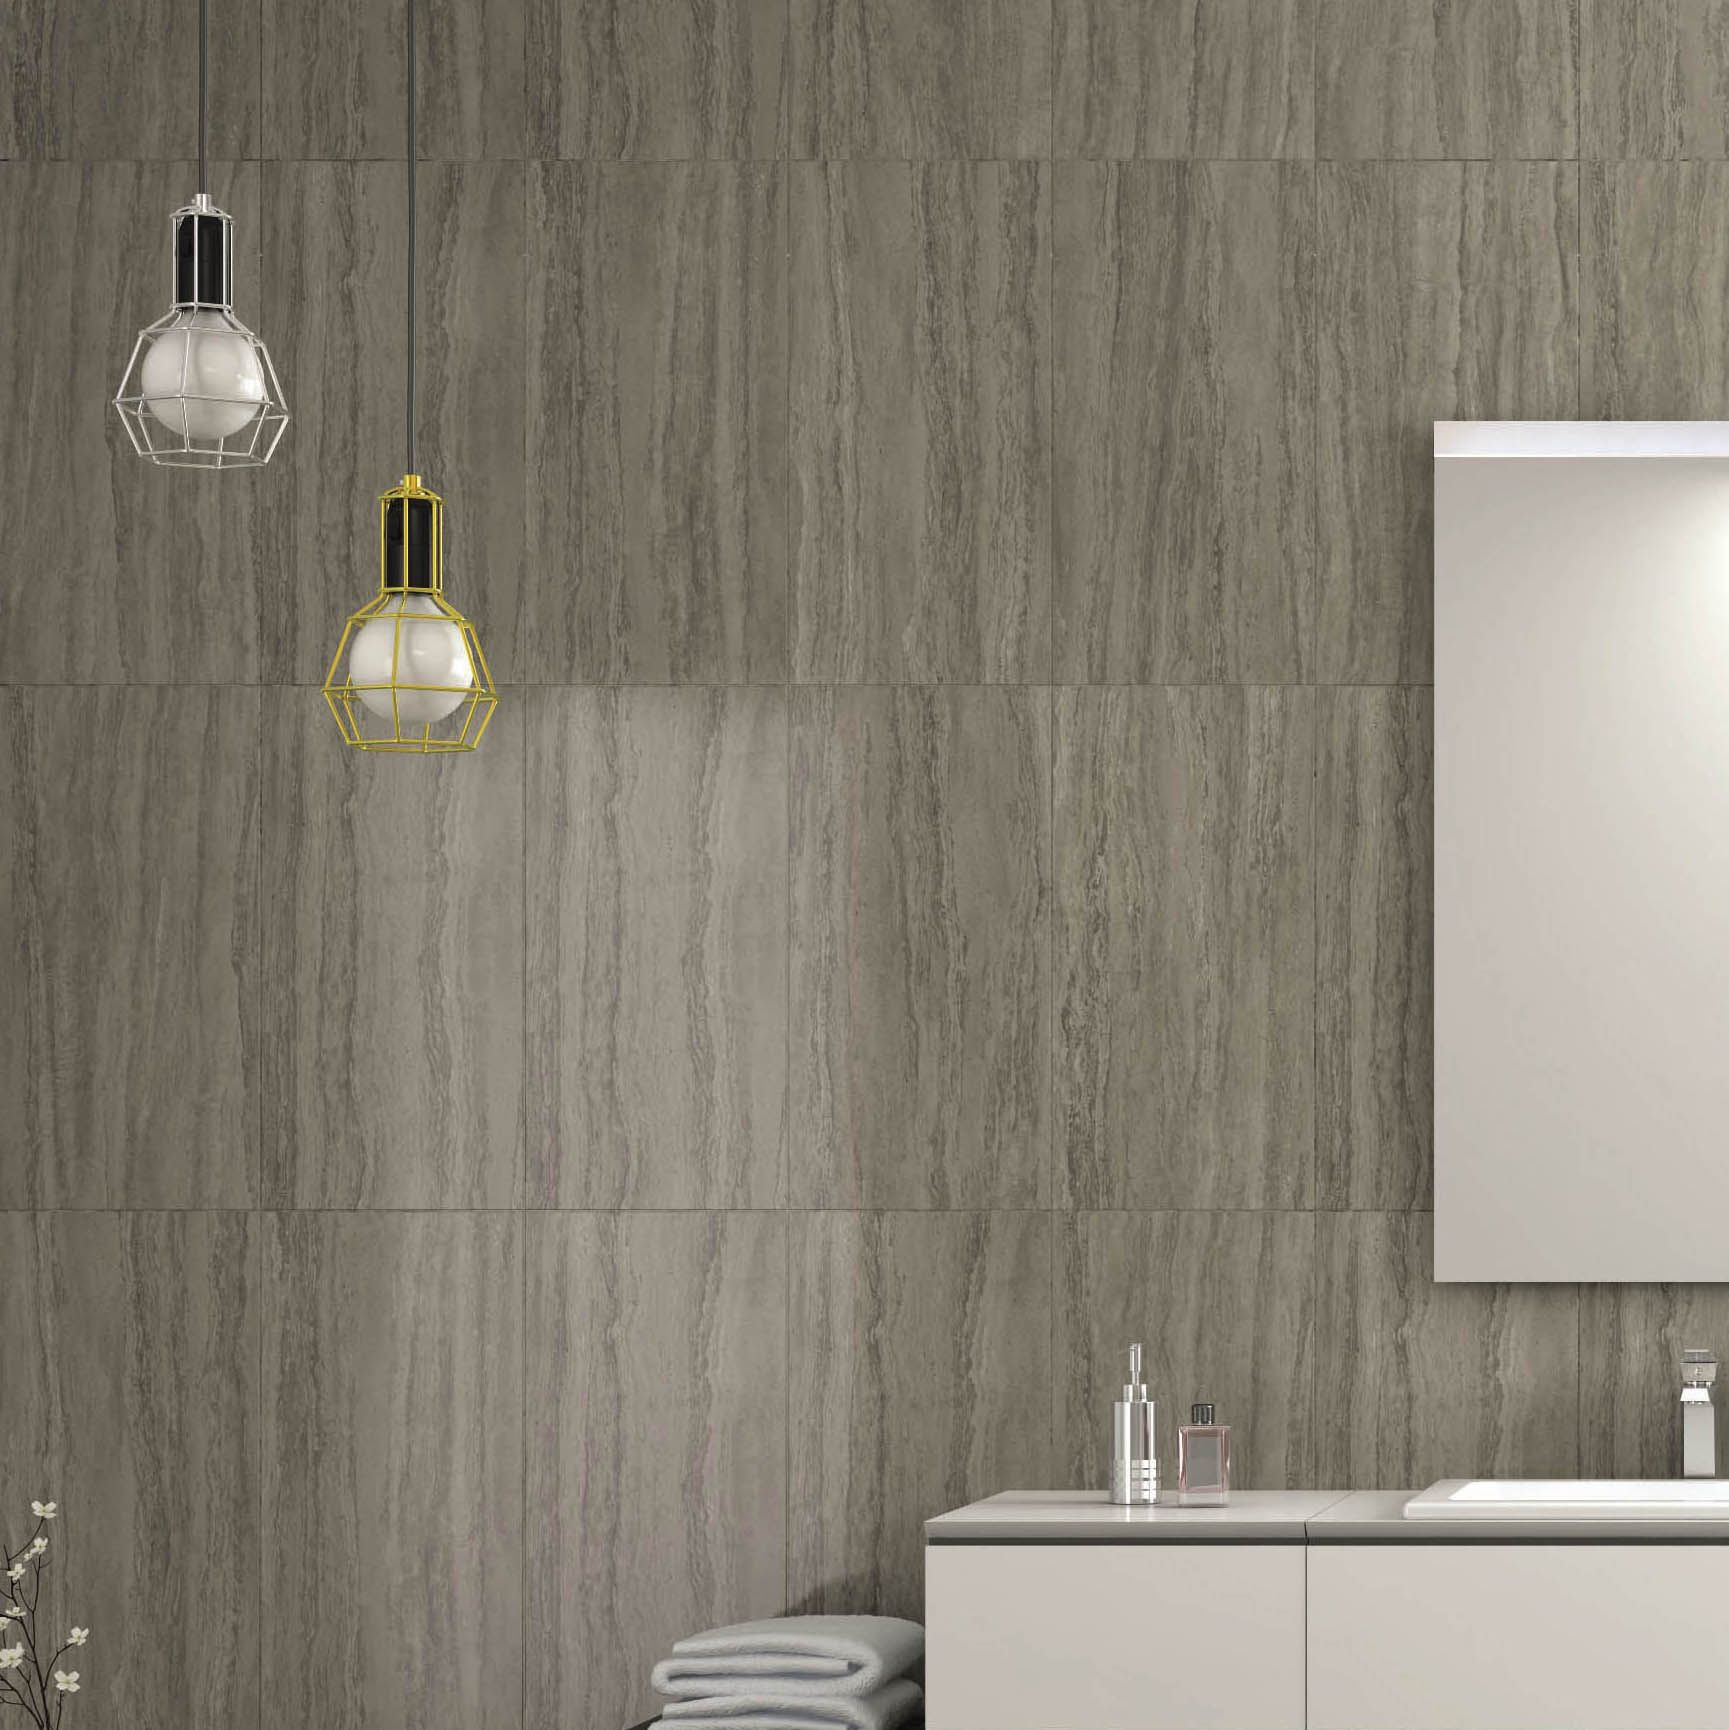 B And Q Red Bathroom Tiles : Anatolia mink stone effect plain porcelain wall floor